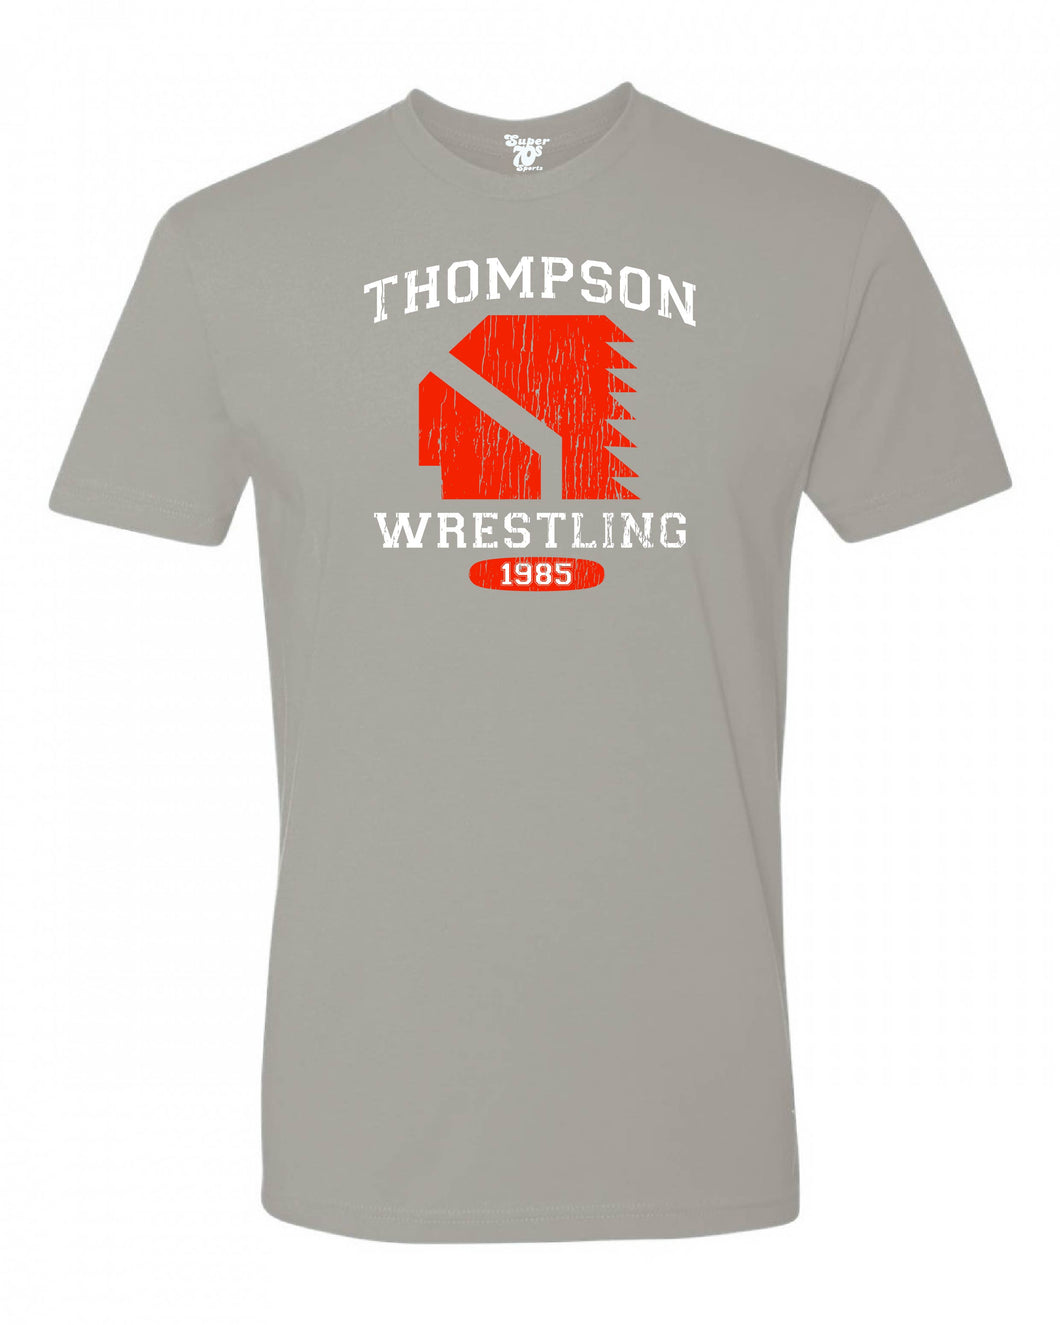 Thompson Wrestling Tee